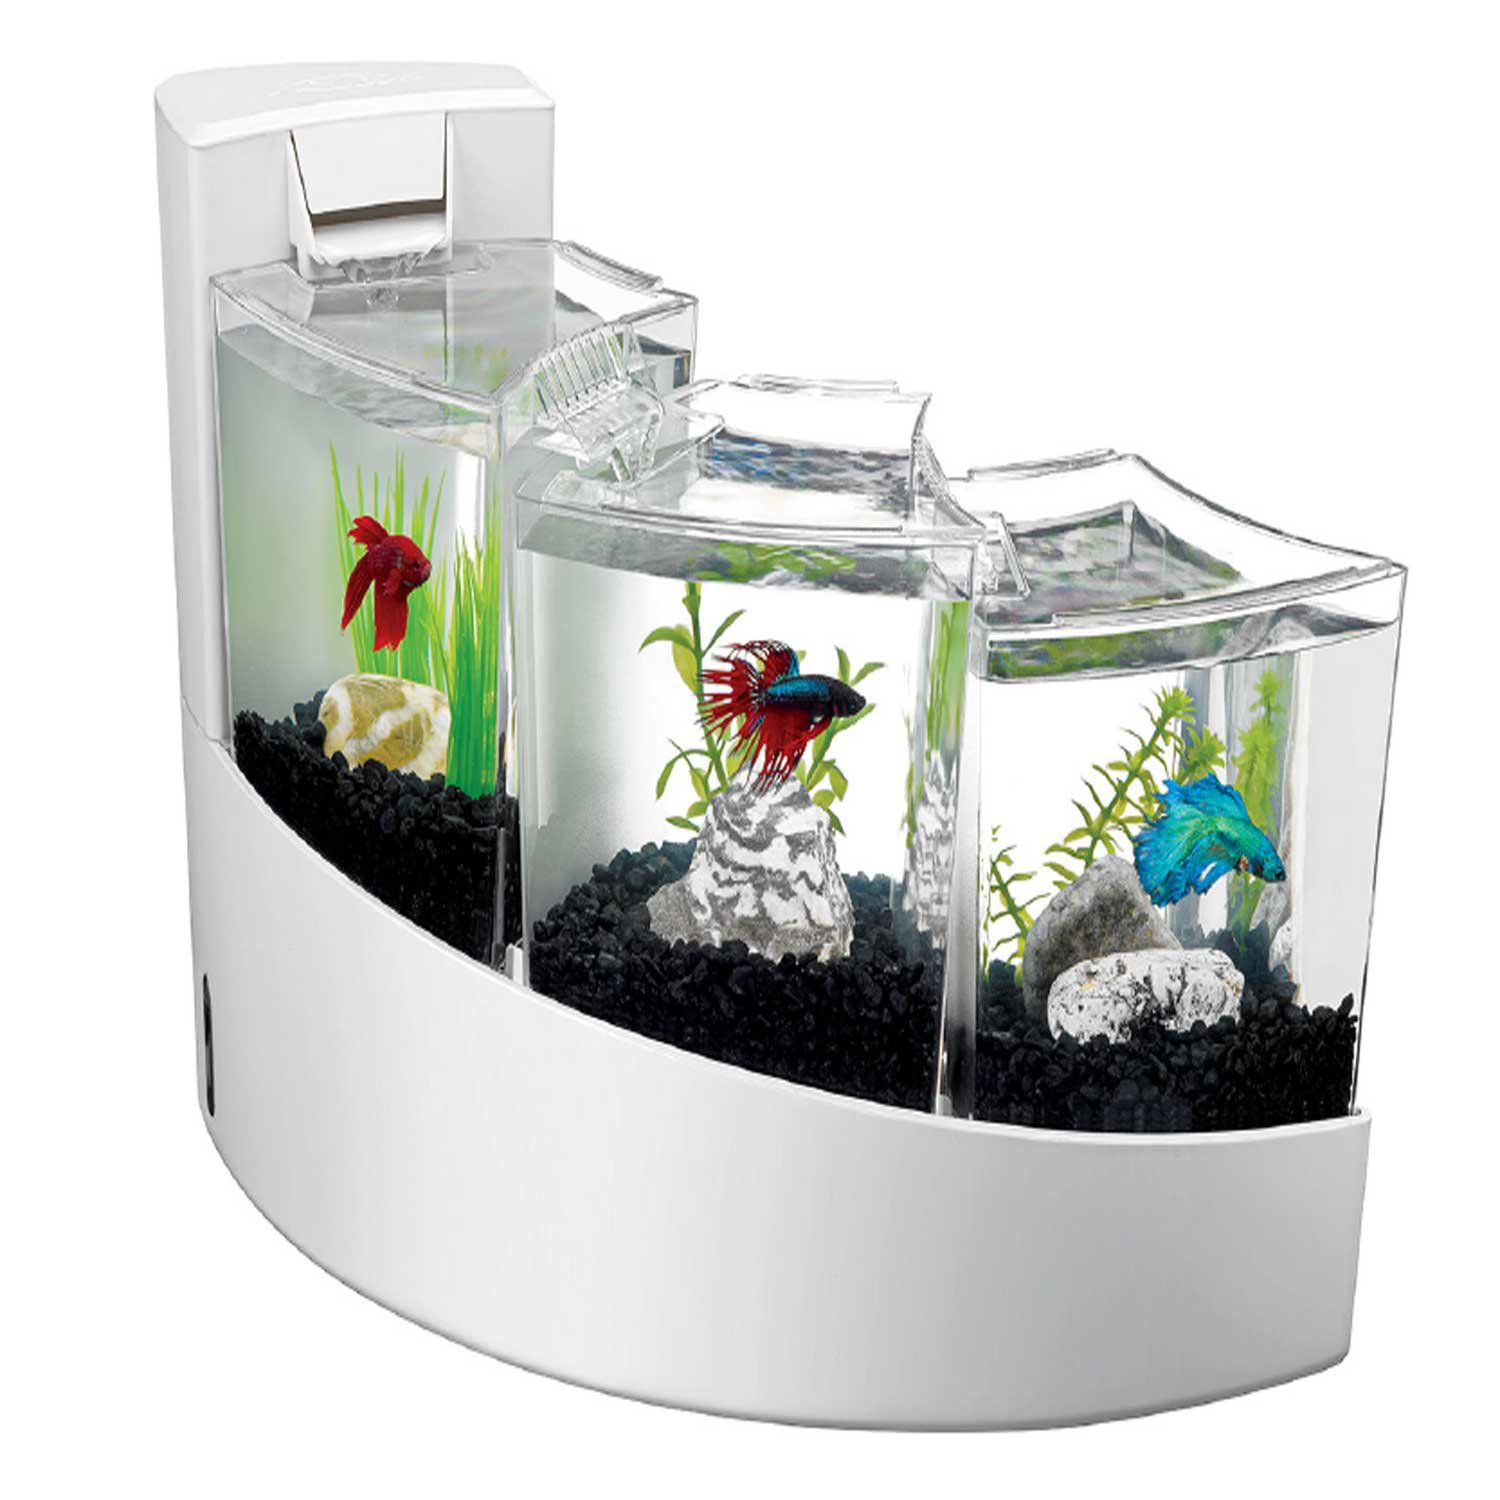 Aqueon betta falls aquarium kit in white fish aquariums for Betta fish tanks amazon